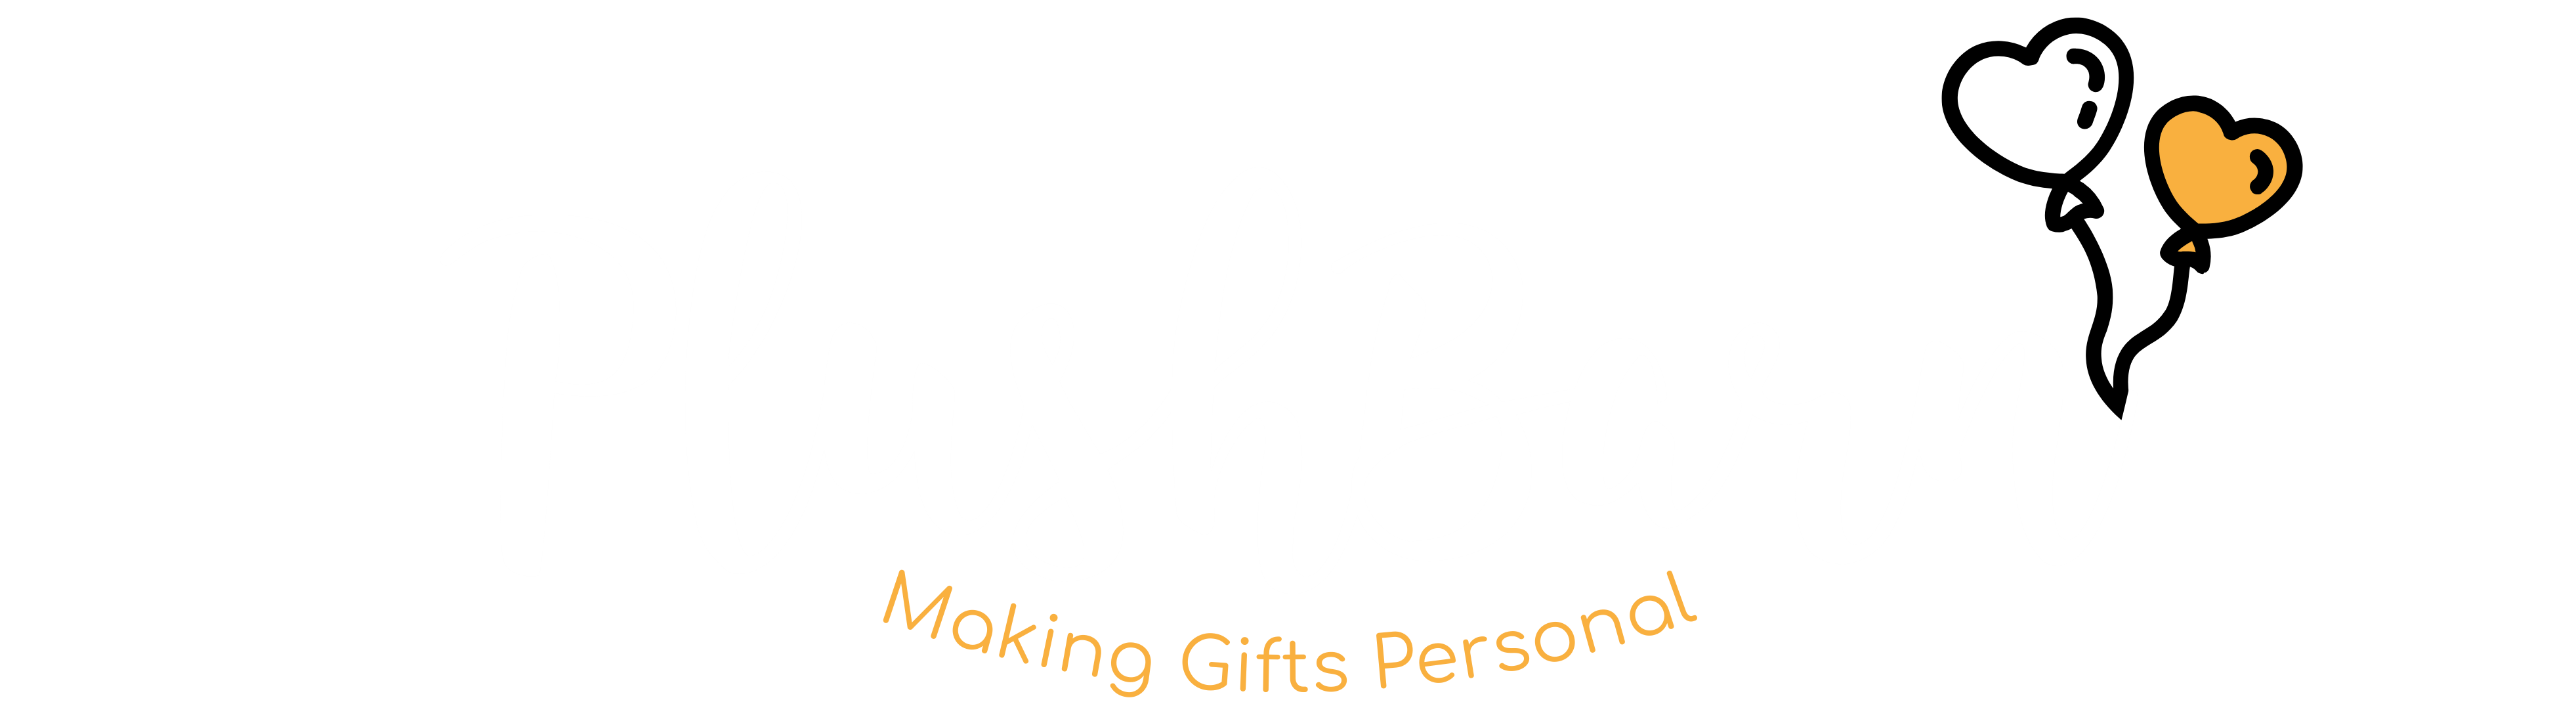 Personalised Gifts & Presents | Plush Barn Gifts